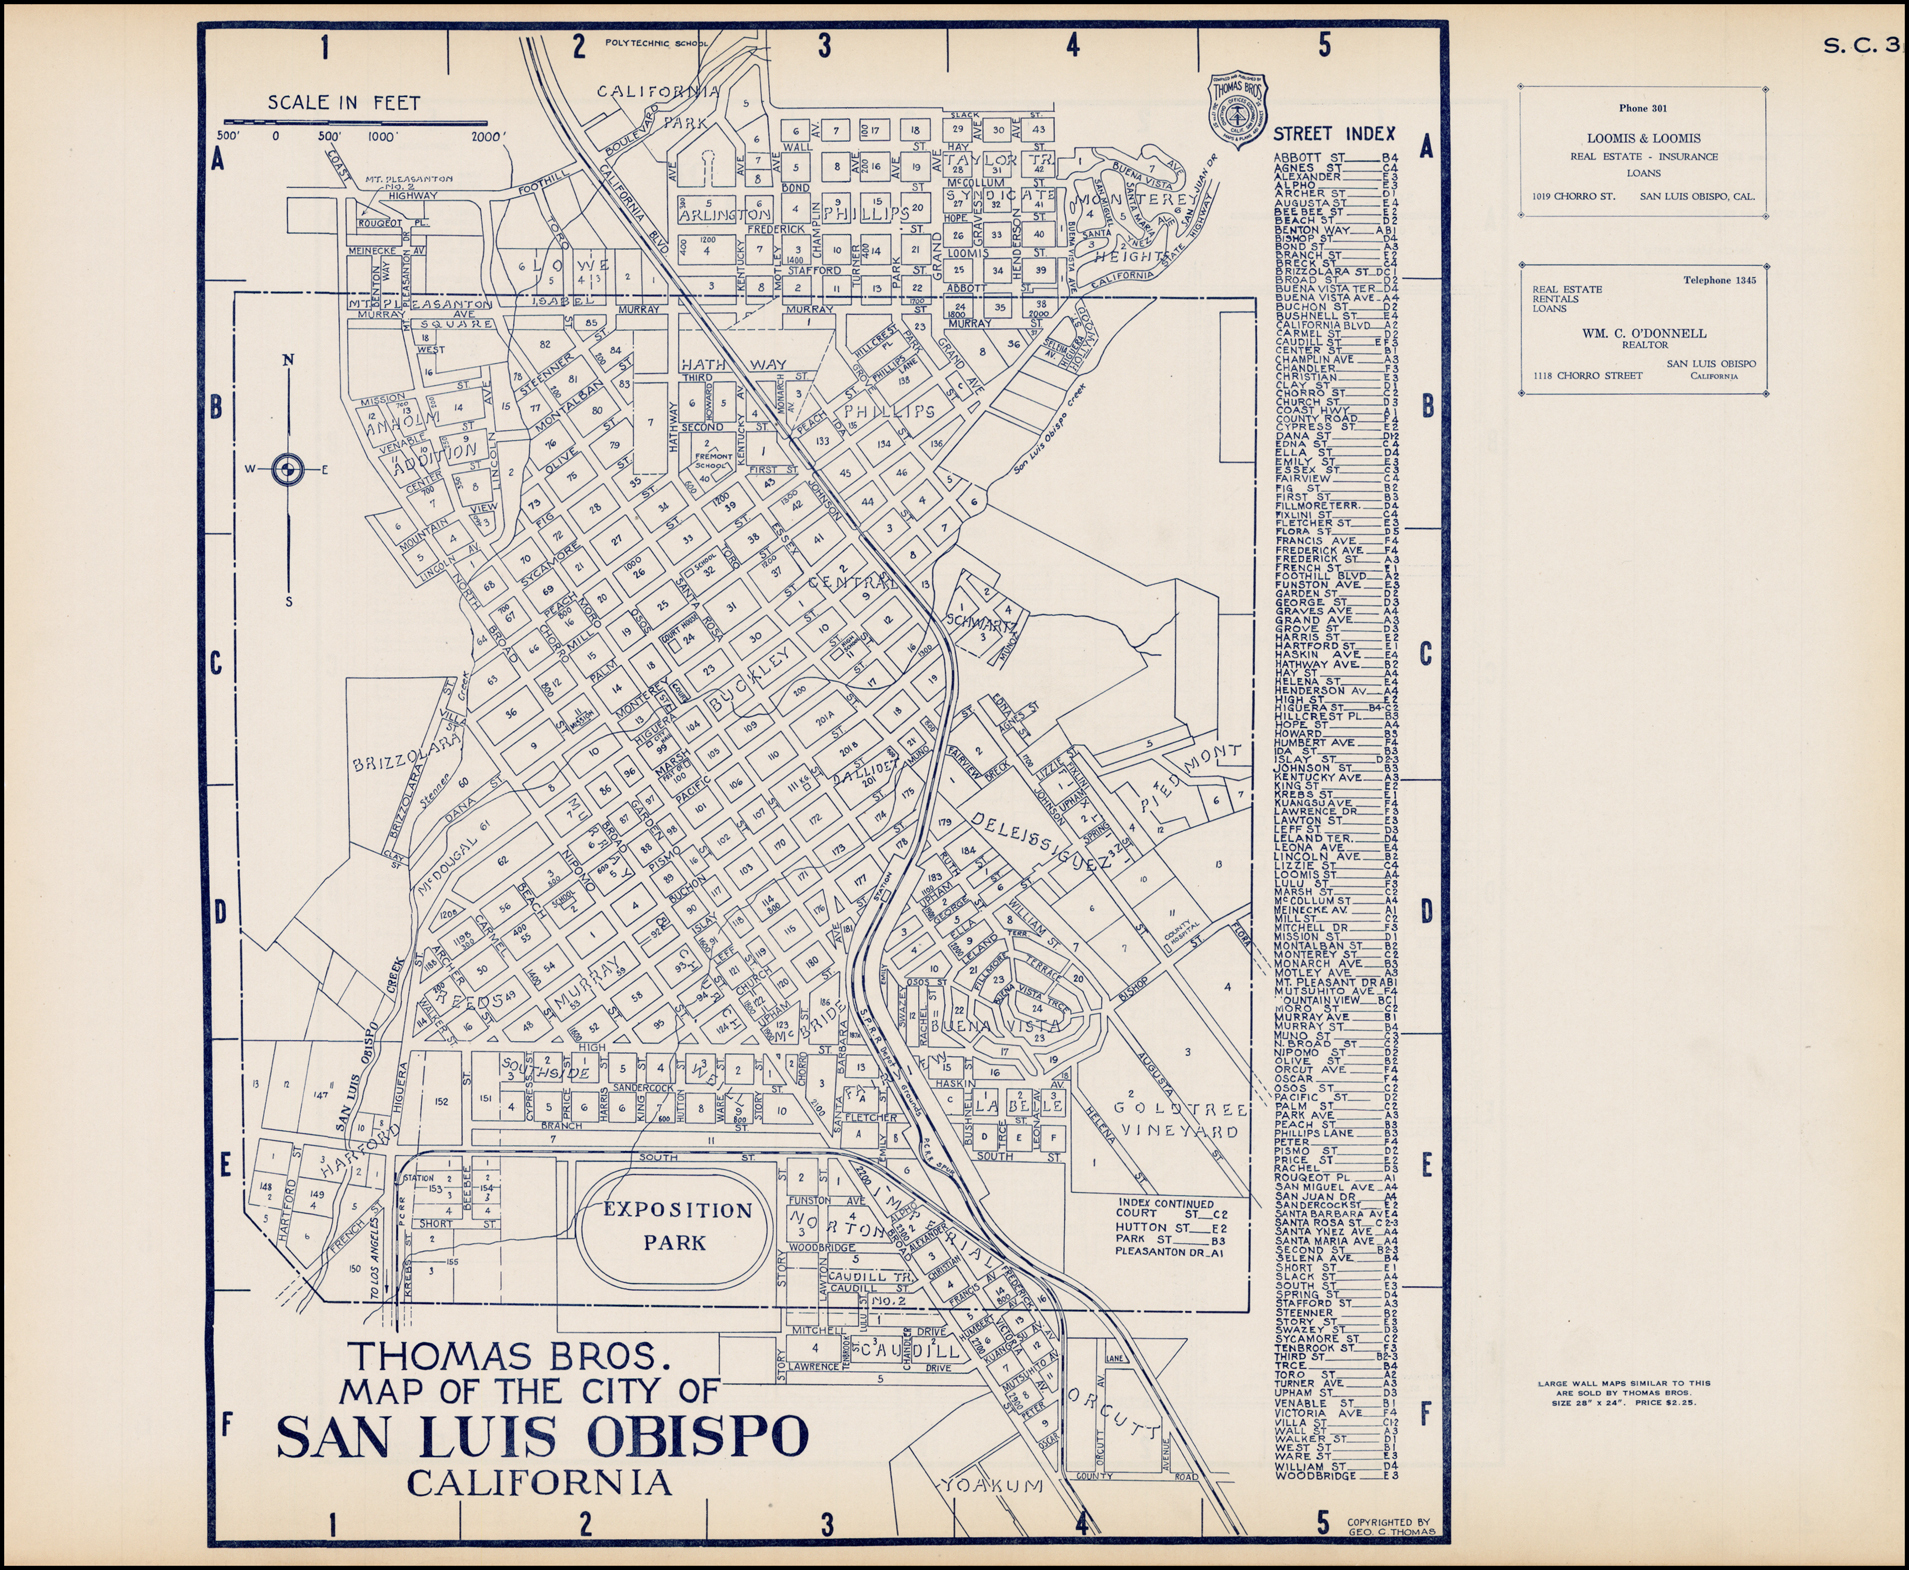 Thomas Bros. Map Of The City Of San Luis Obispo California - Barry - Thomas Bros Maps California